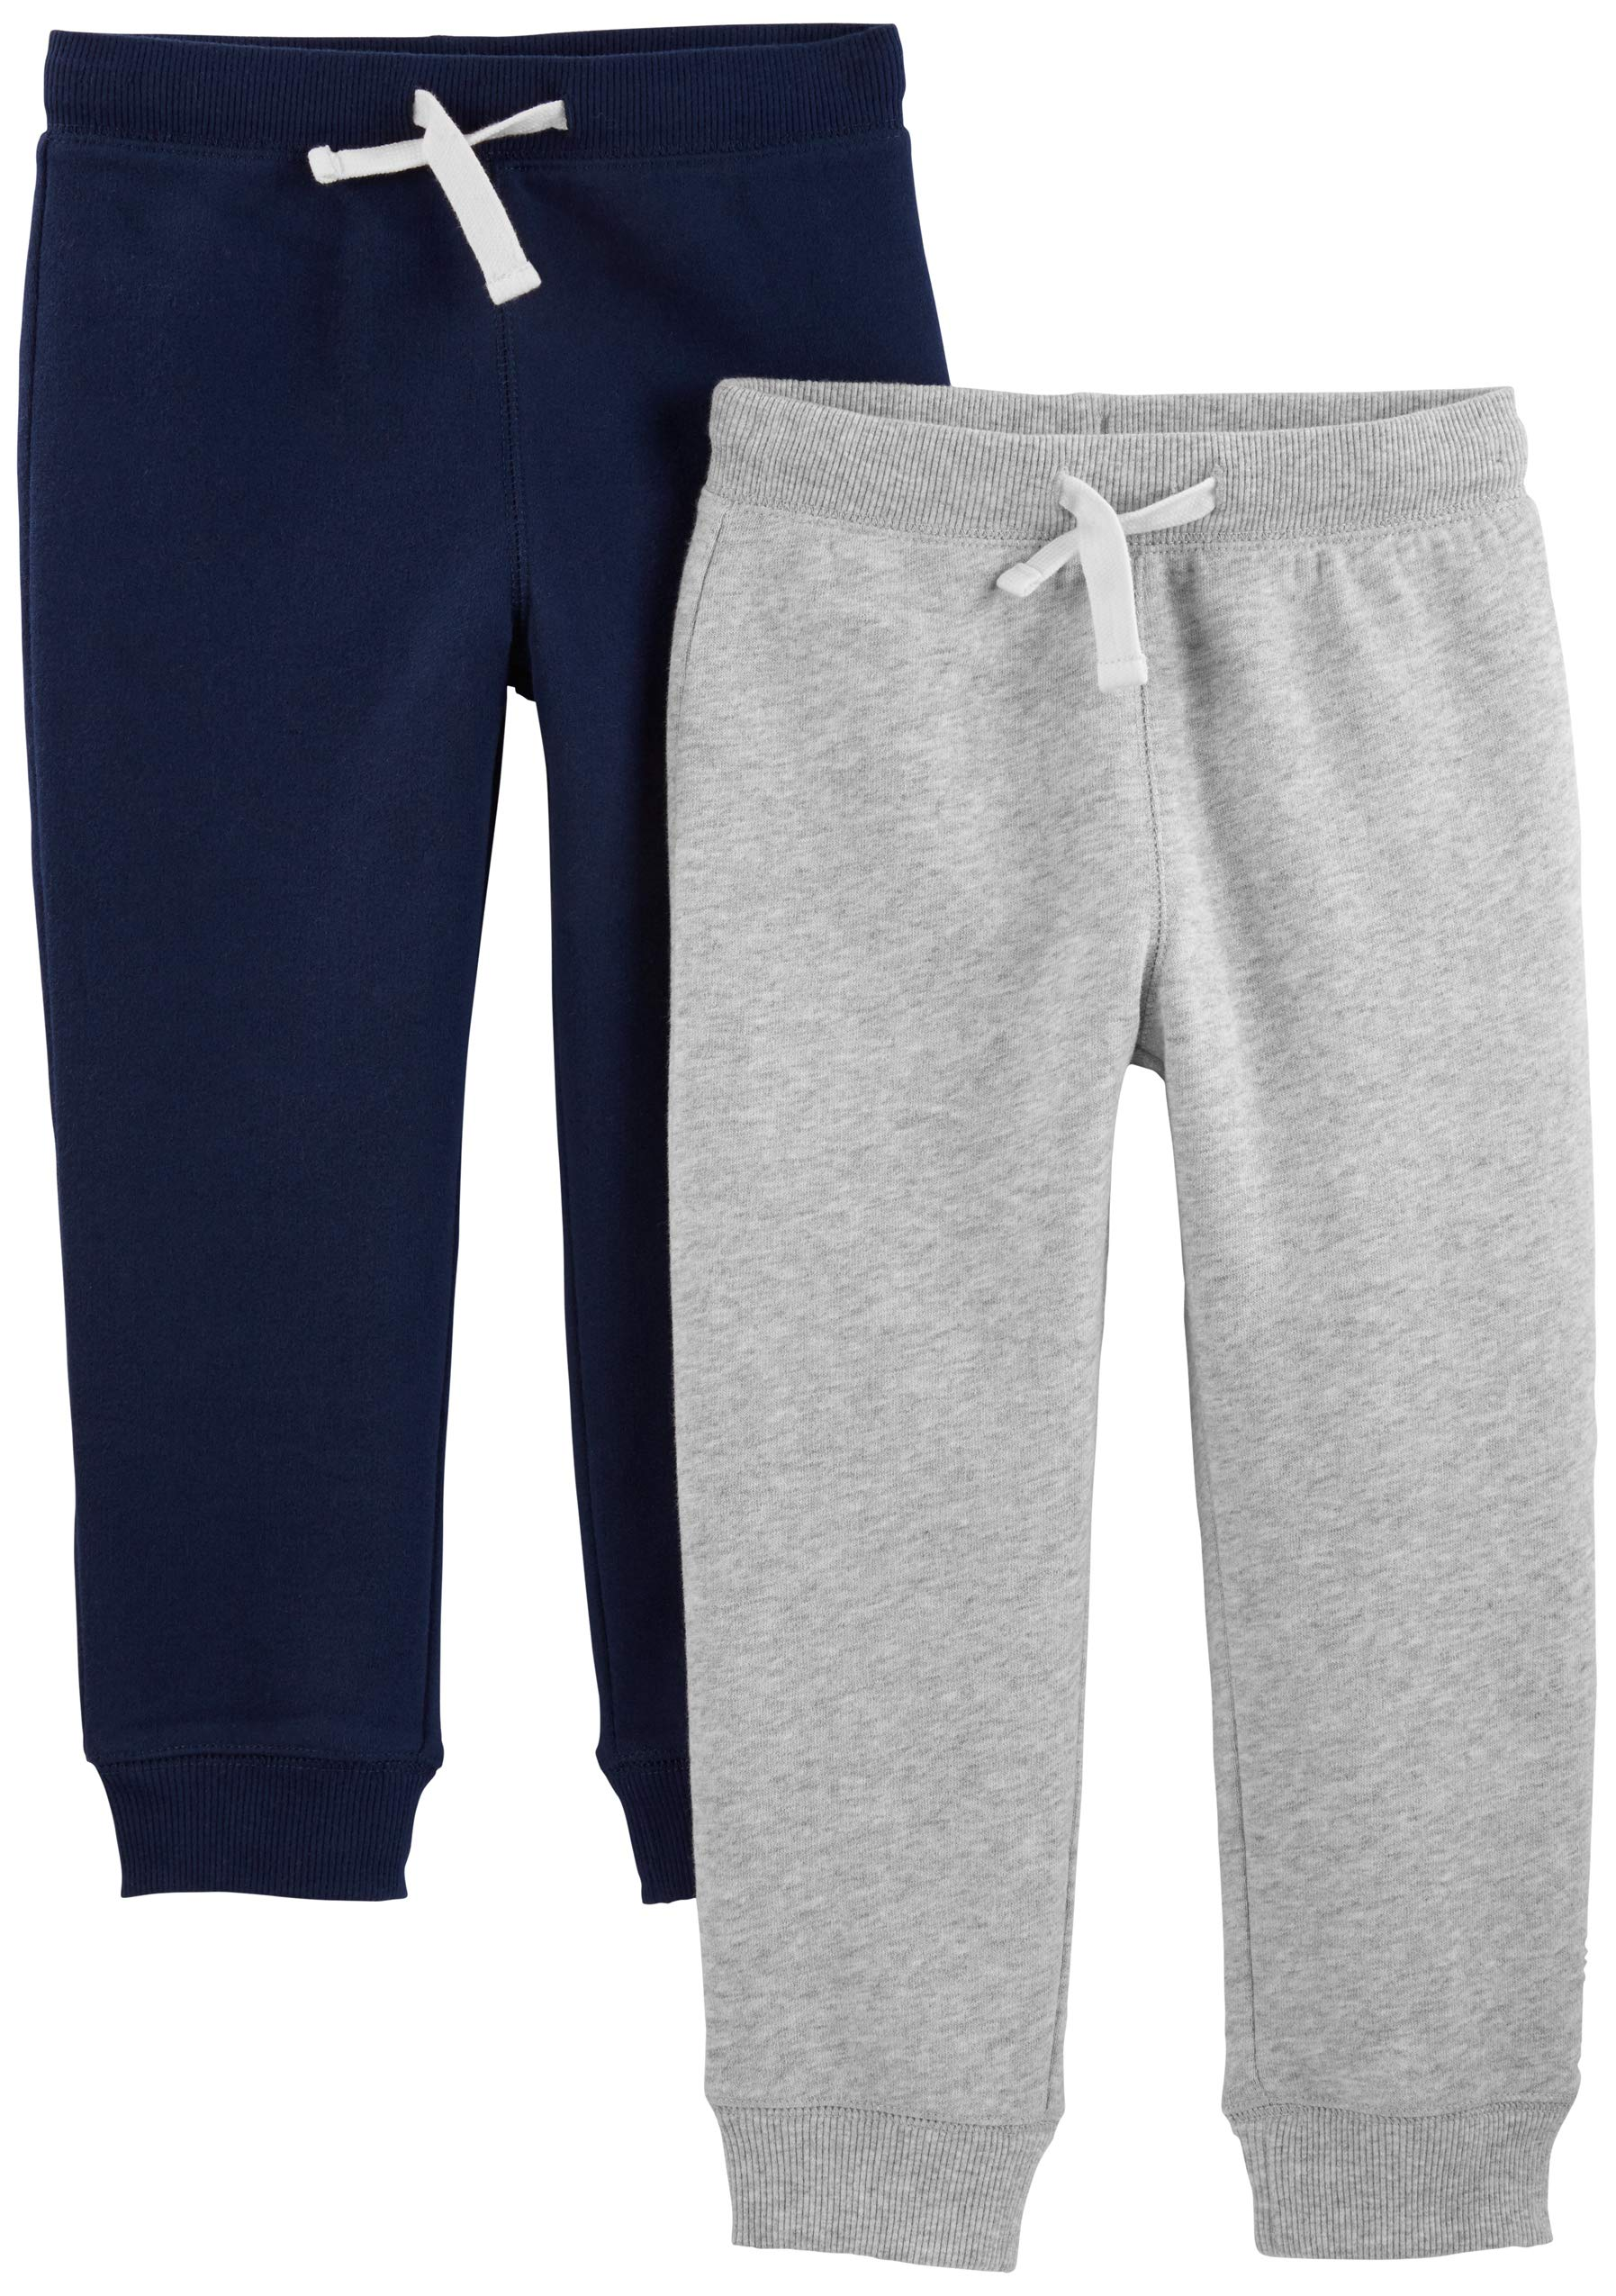 Simple Joys by Carter's Boys' Toddler 2-Pack Pull on Fleece Pants, Gray/Navy 3T